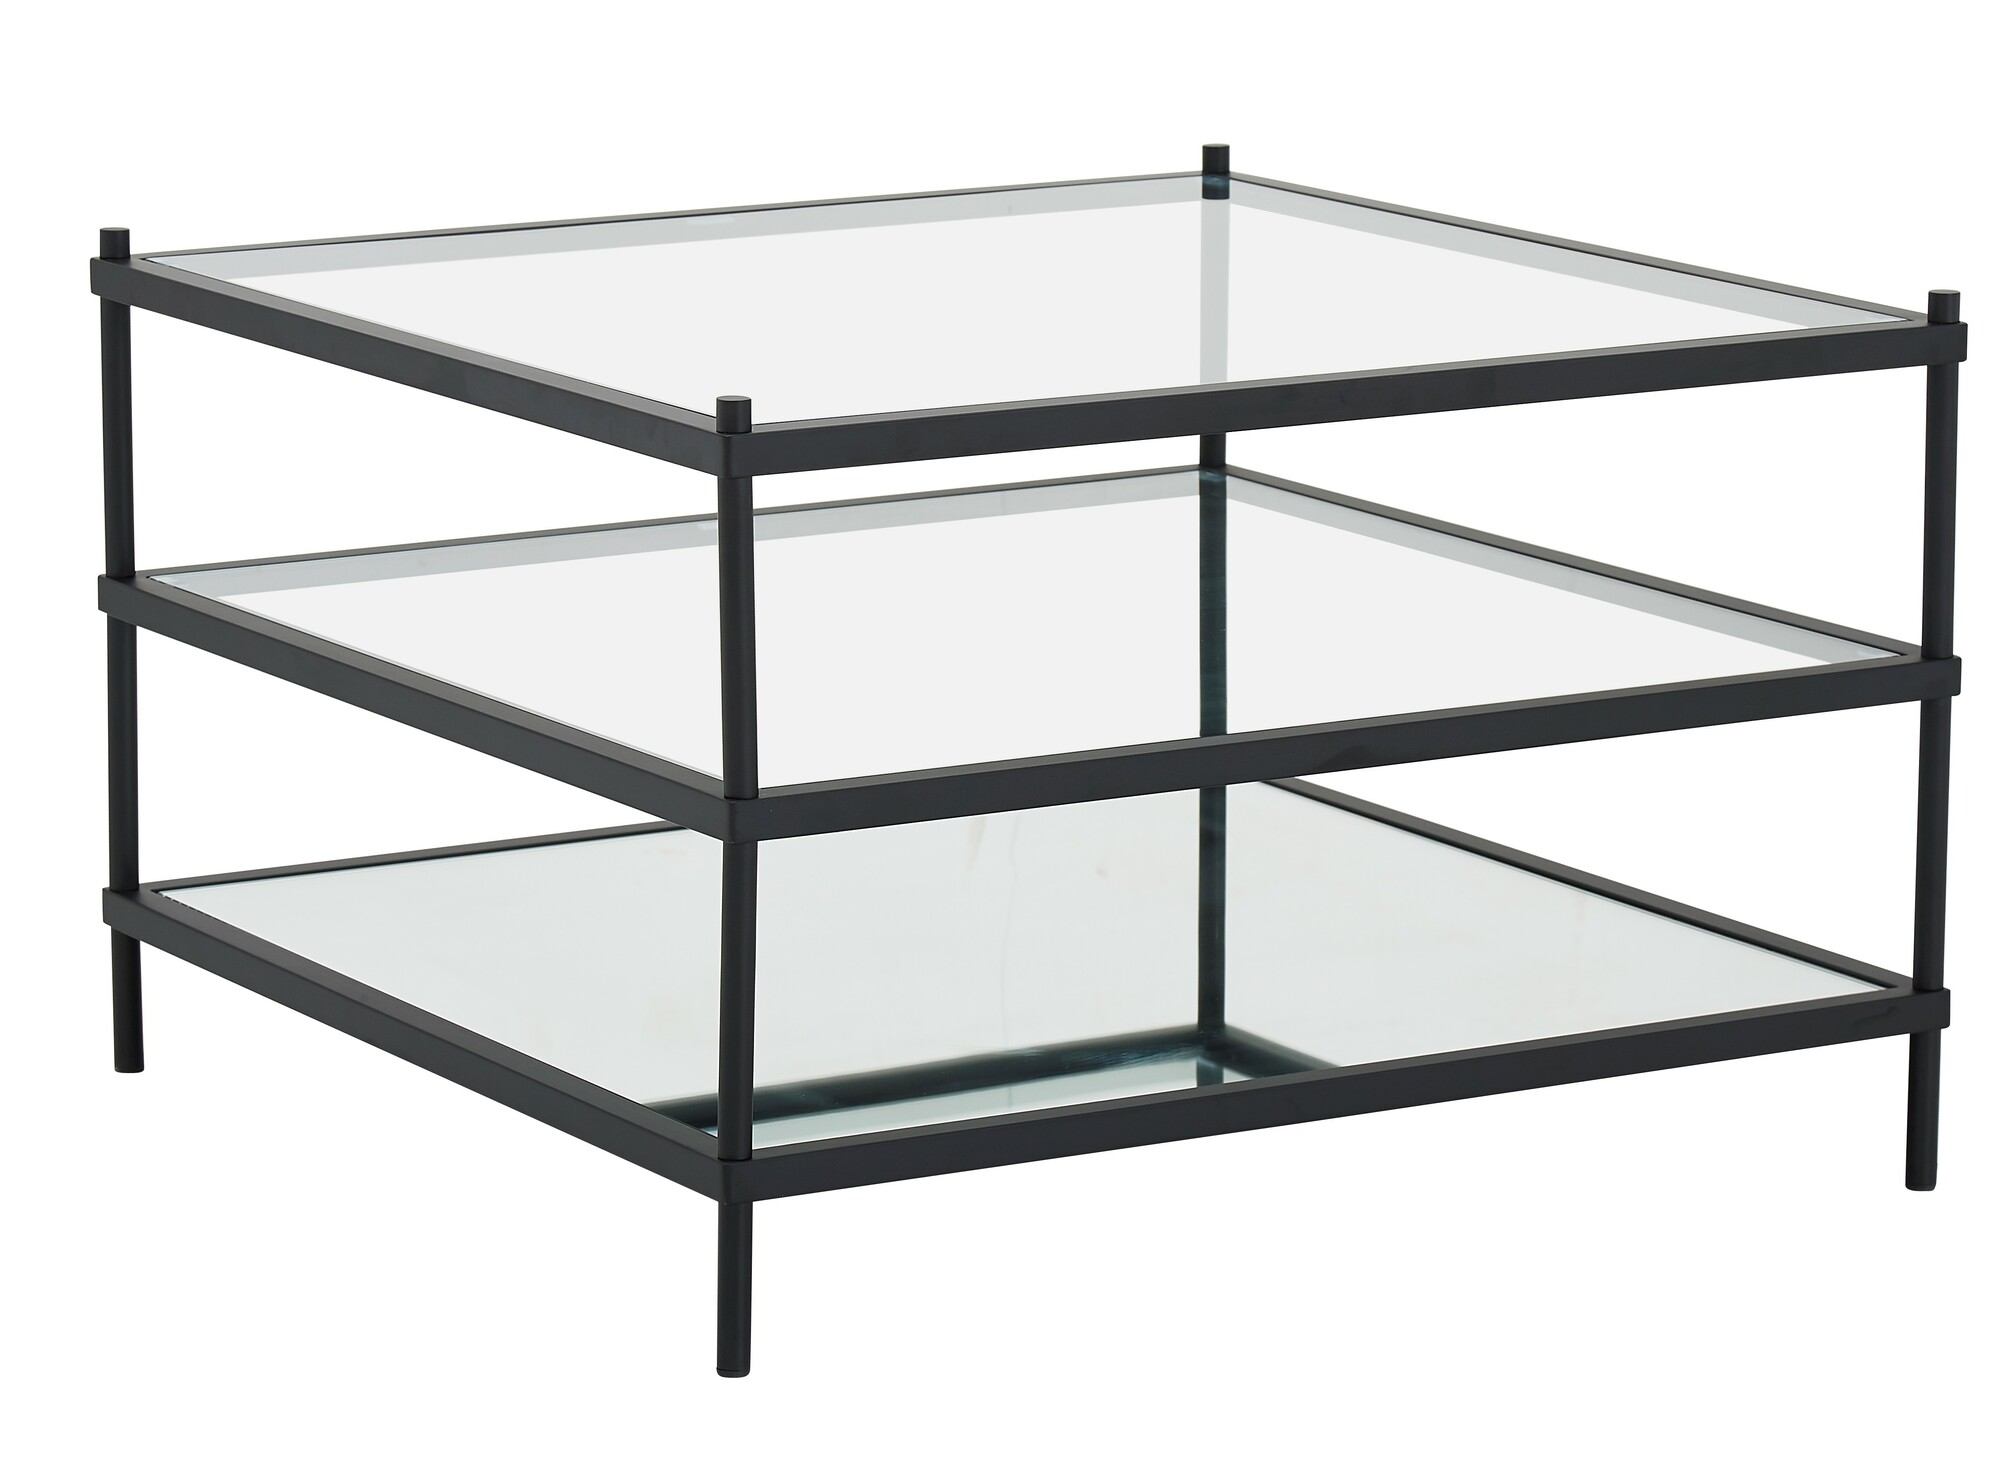 Temple Webster Black Square Francesca Glass Coffee Table Reviews